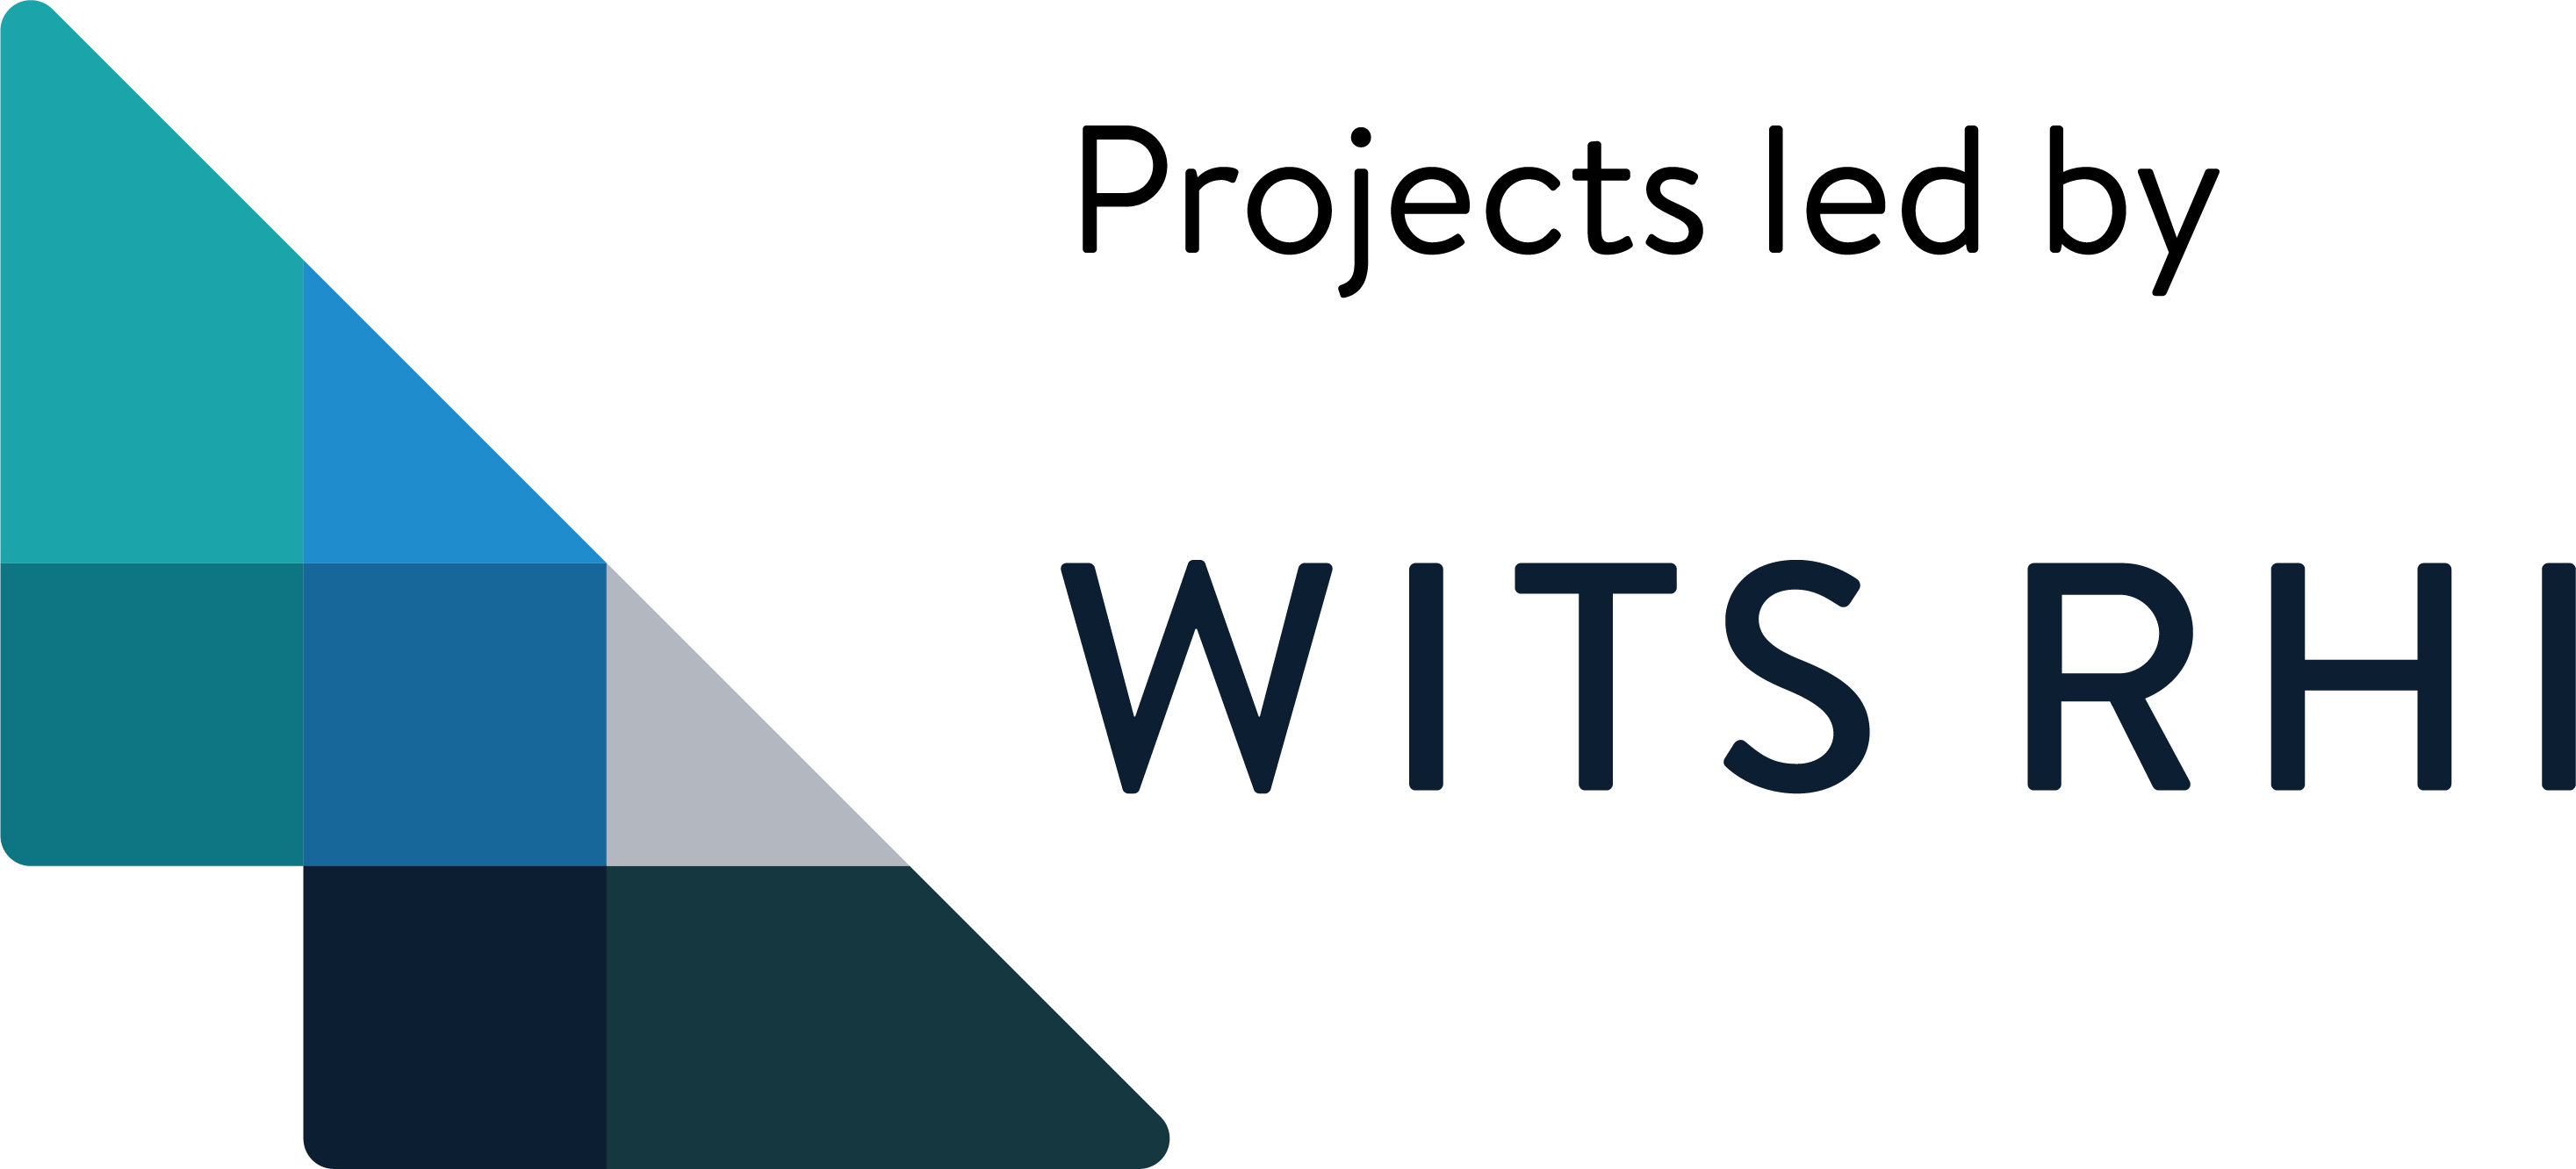 Wits RHI Logo_Projects led by